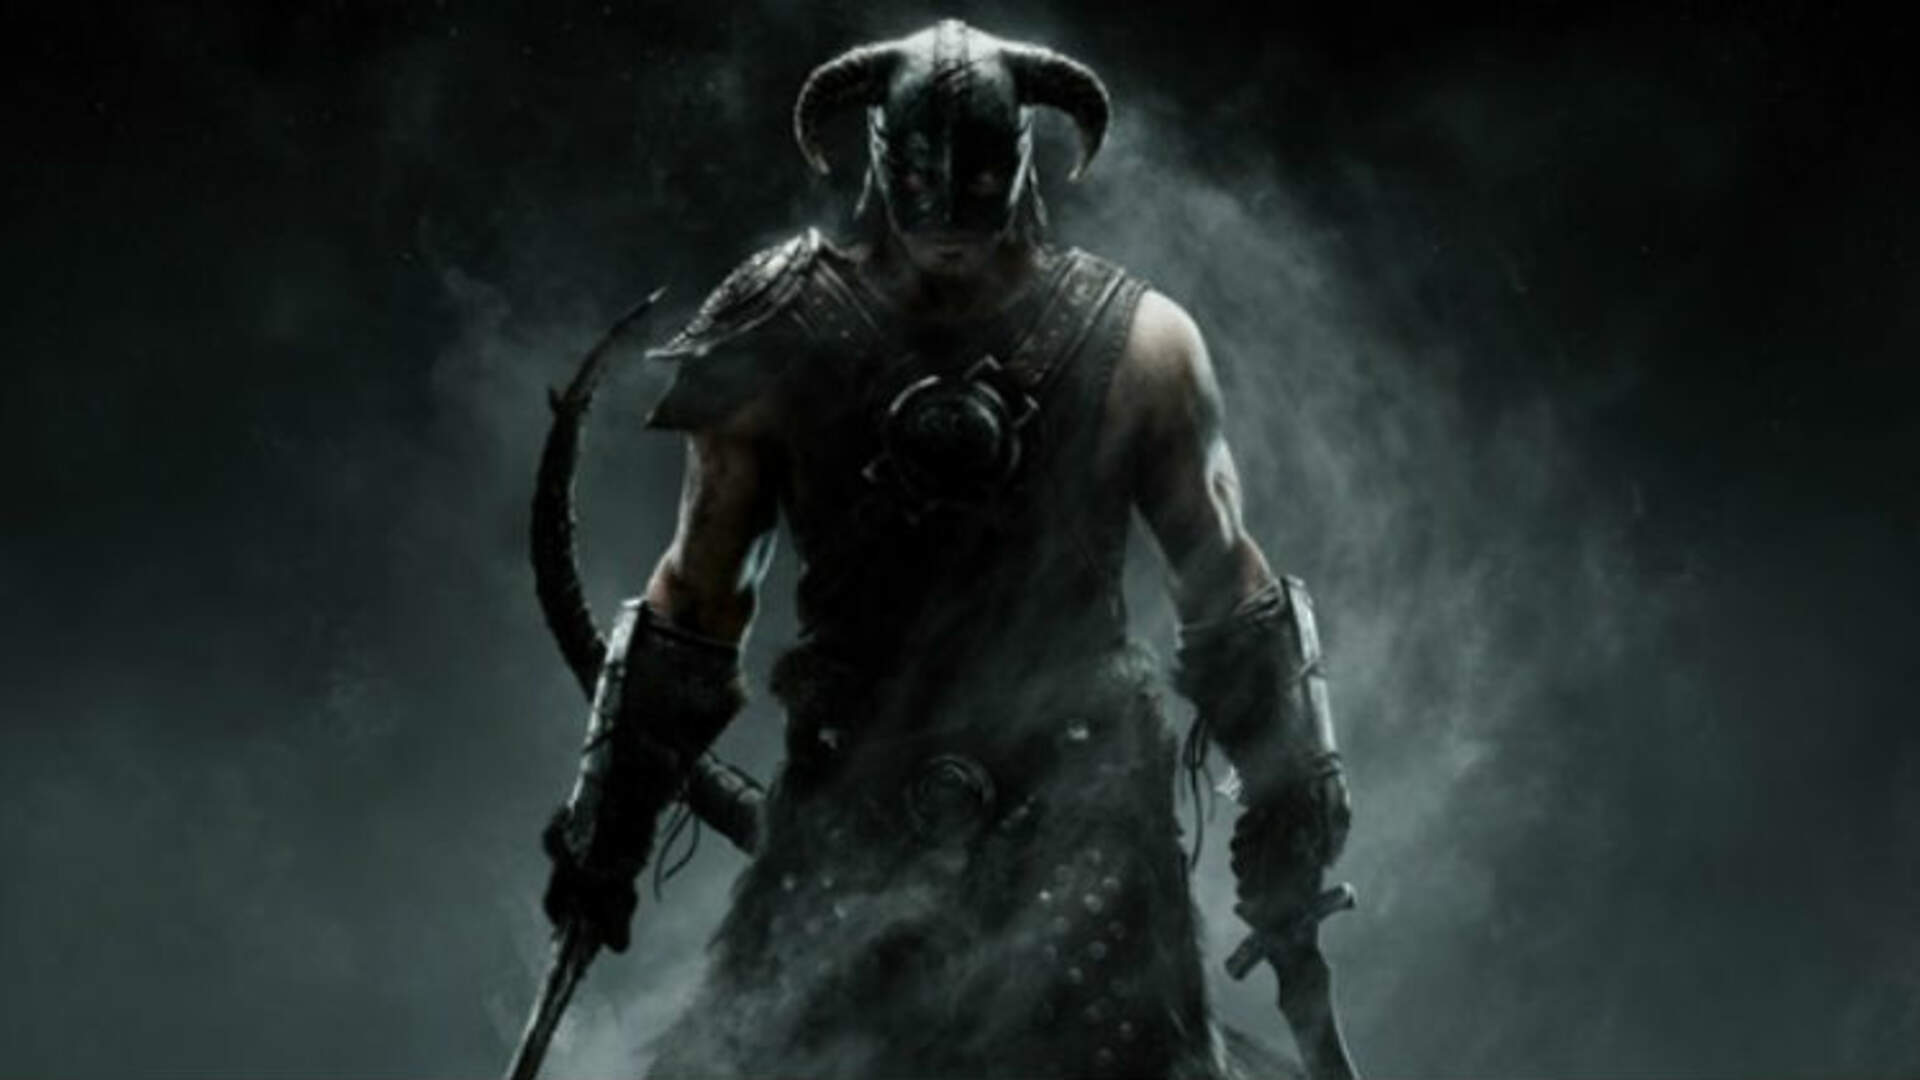 Skyrim Beginner's Guide for Xbox One and PS4: Where To Go?